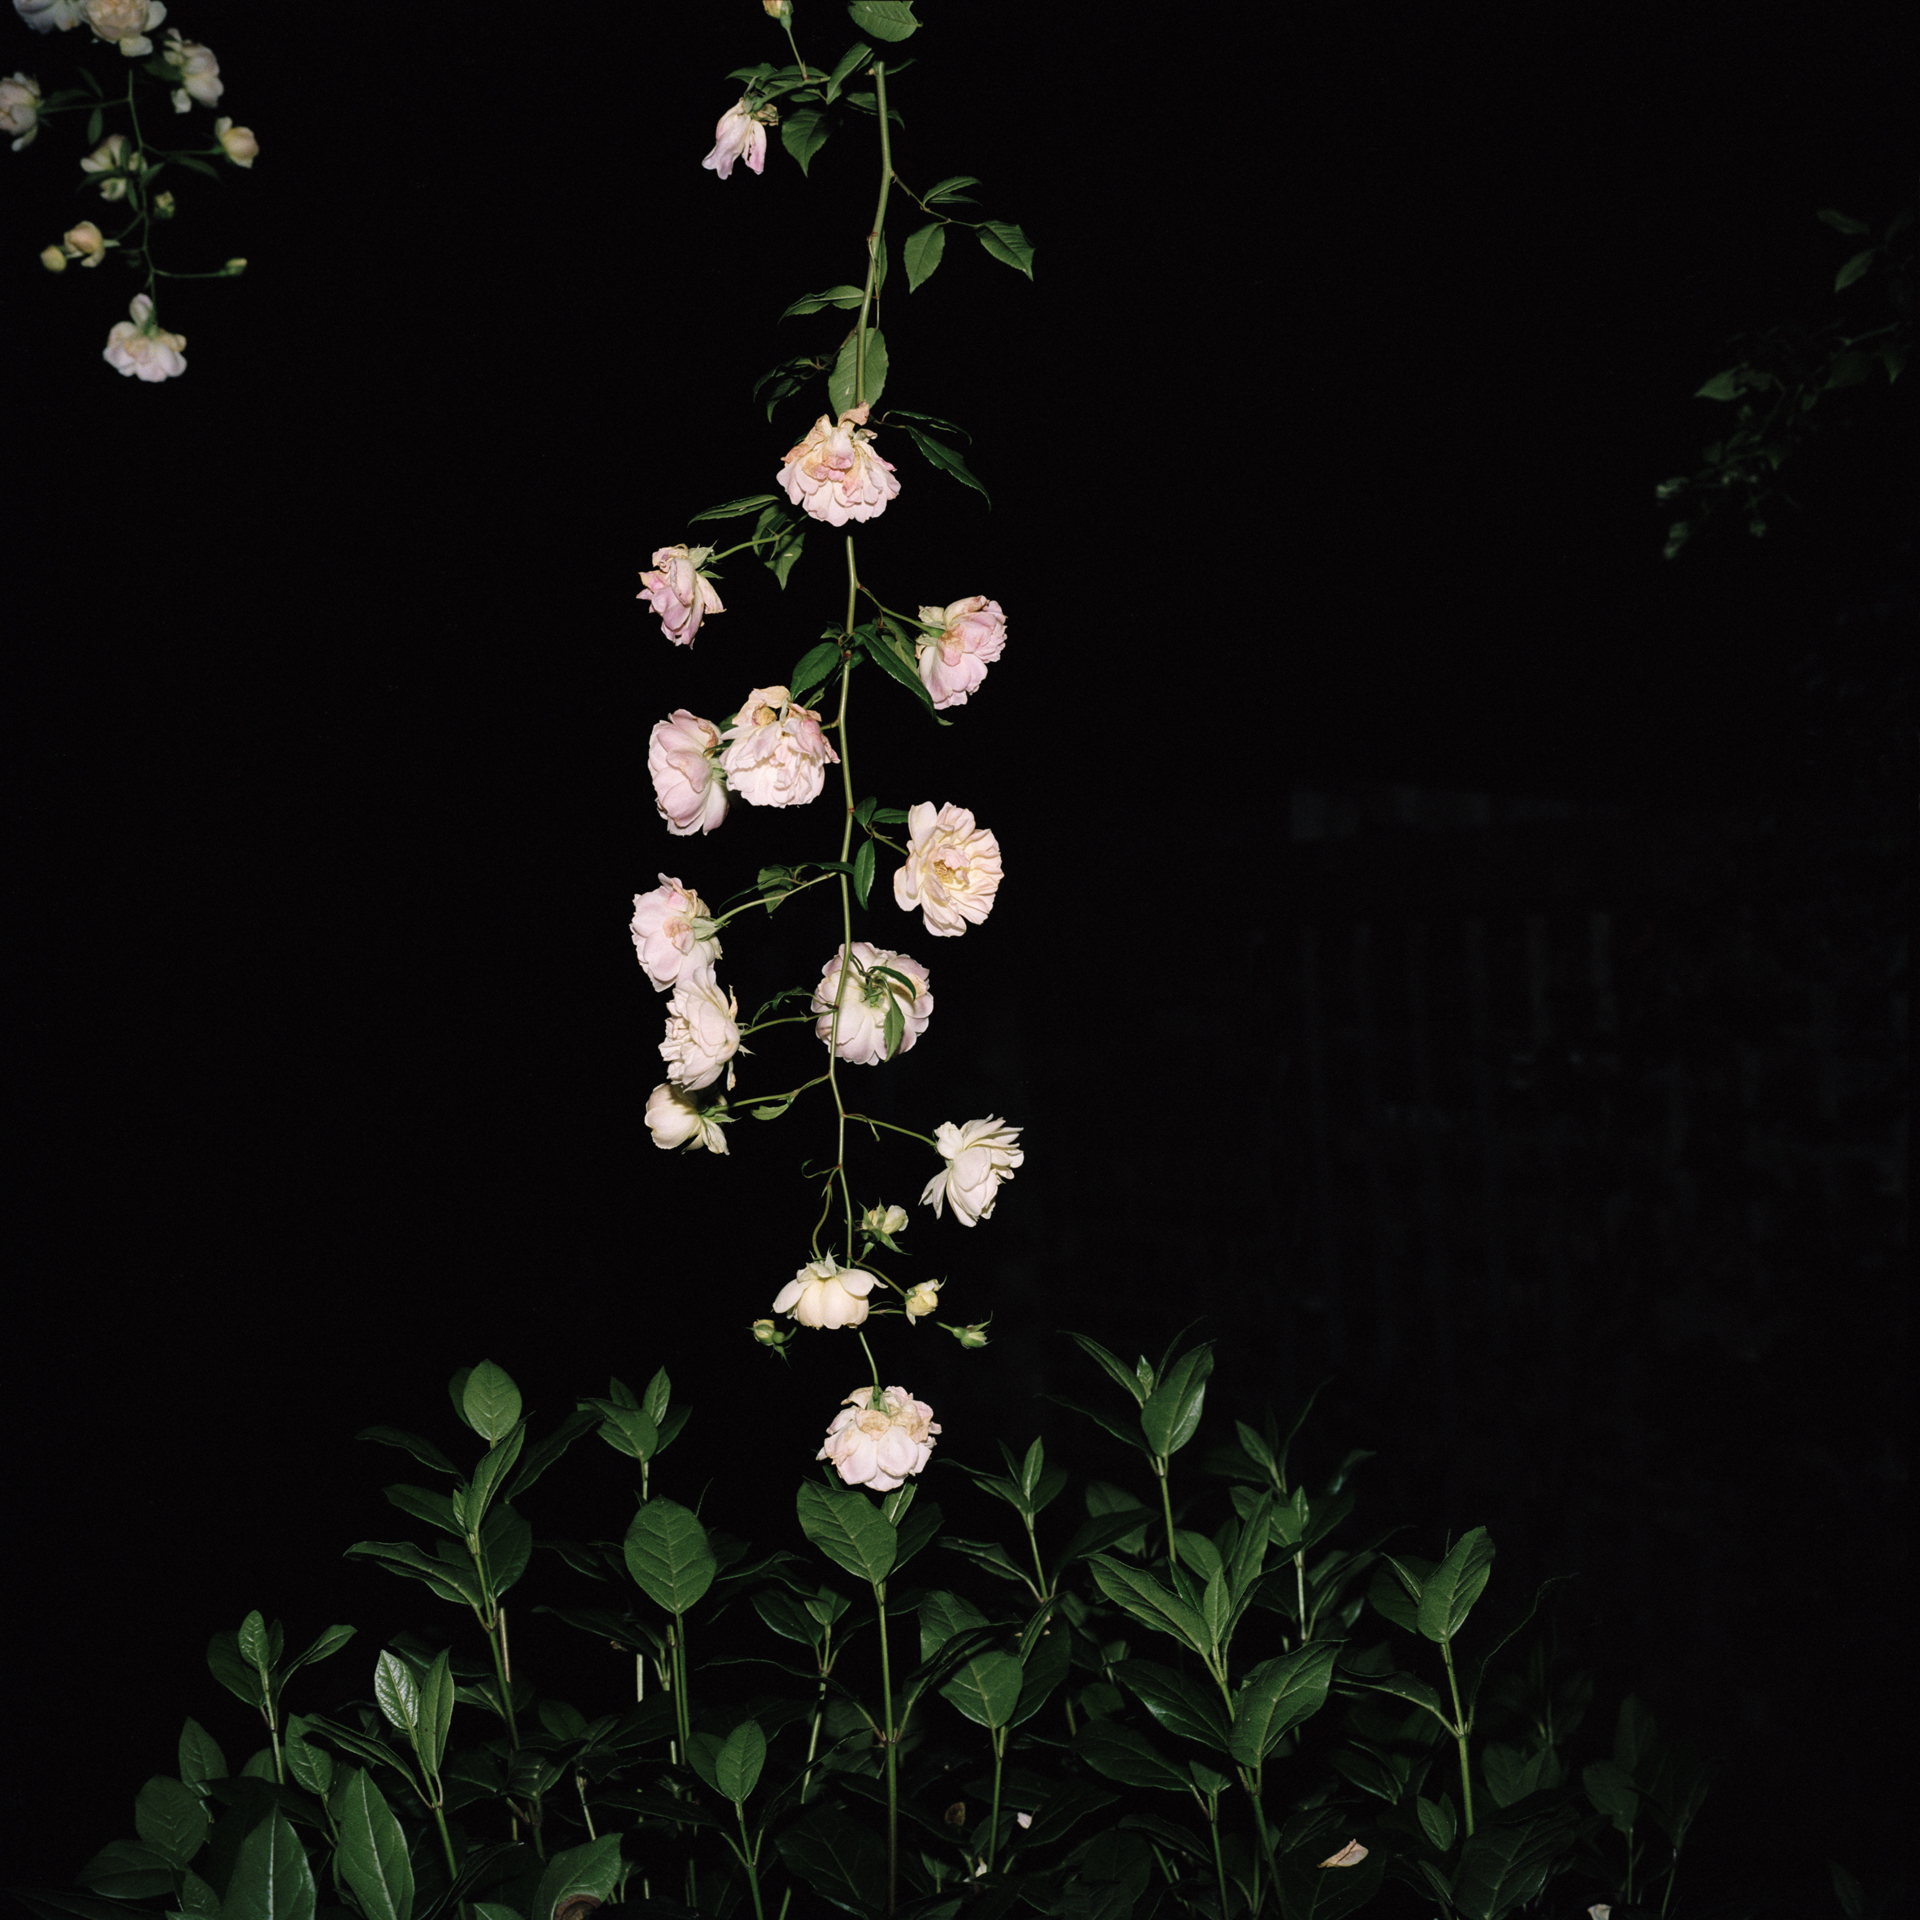 Night Flower 103